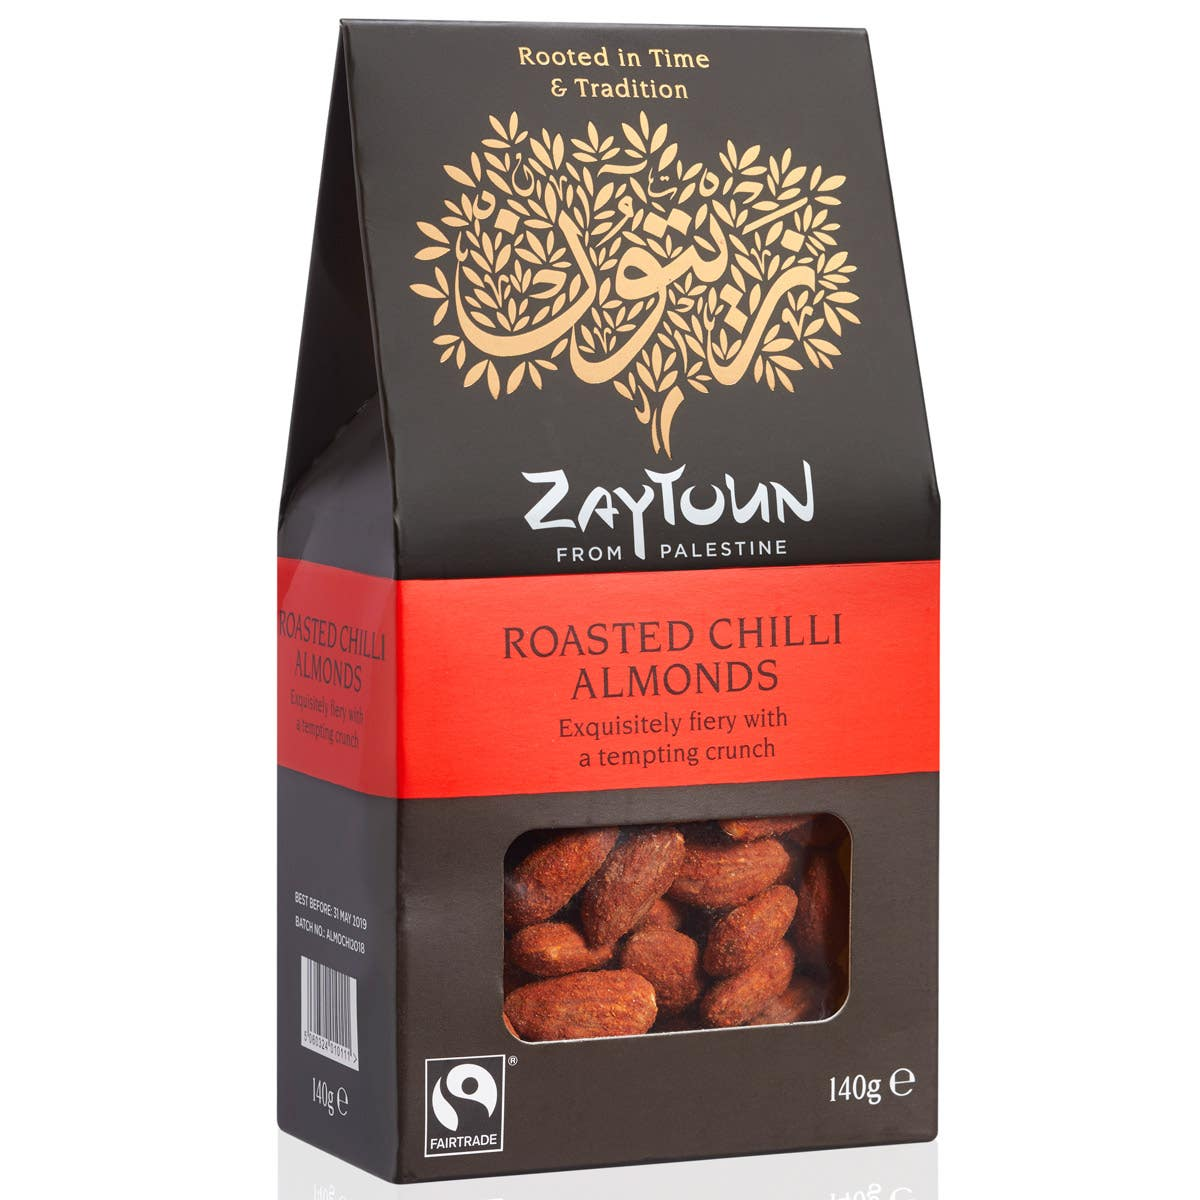 Zaytoun Roasted Chilli Almonds (140g) SINGLE